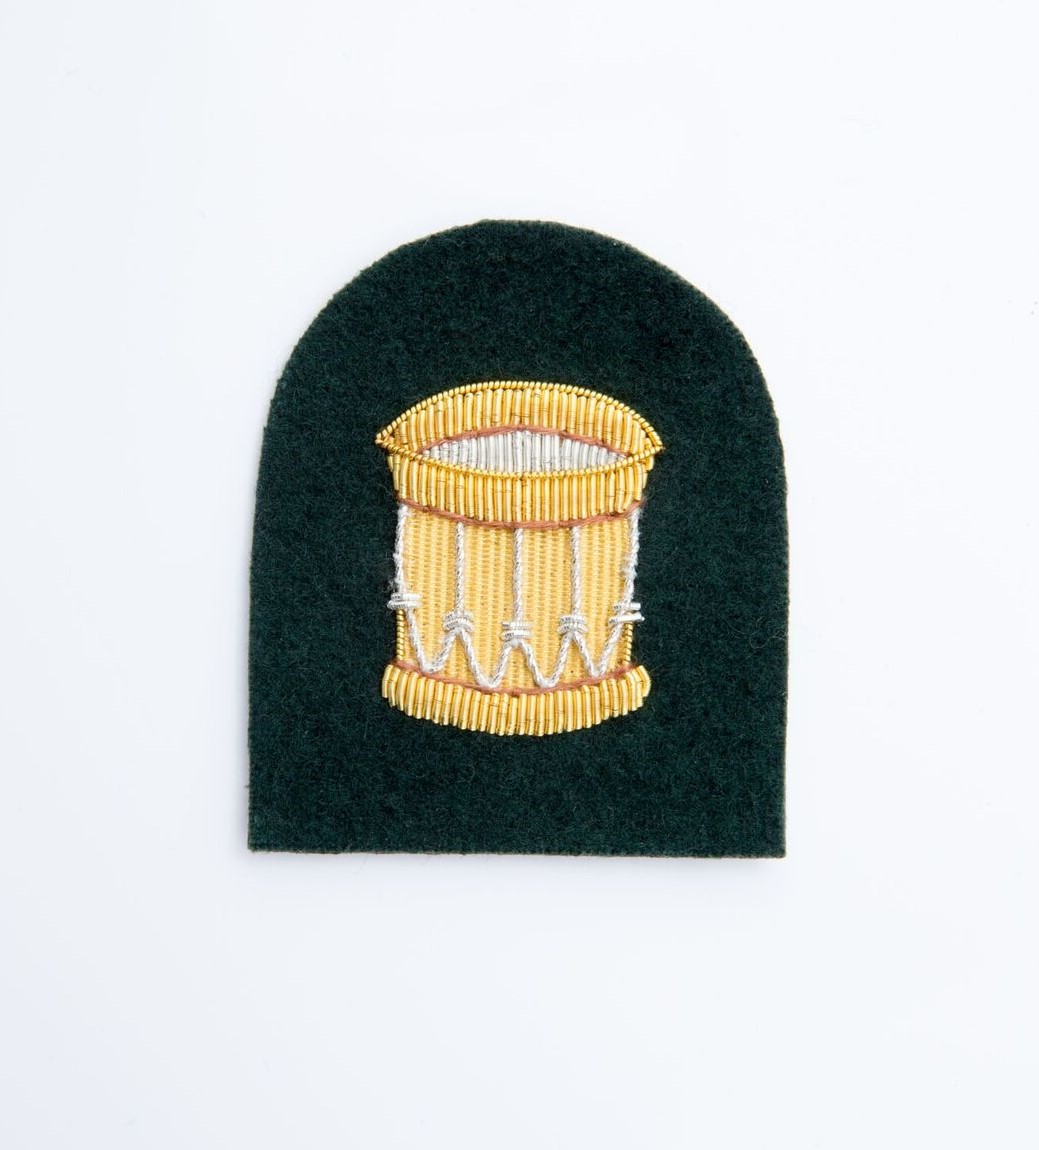 e53da71ecf9 Royal Marines, Gold on Green 'Lovet Suit' Drum Badge - The Marching ...